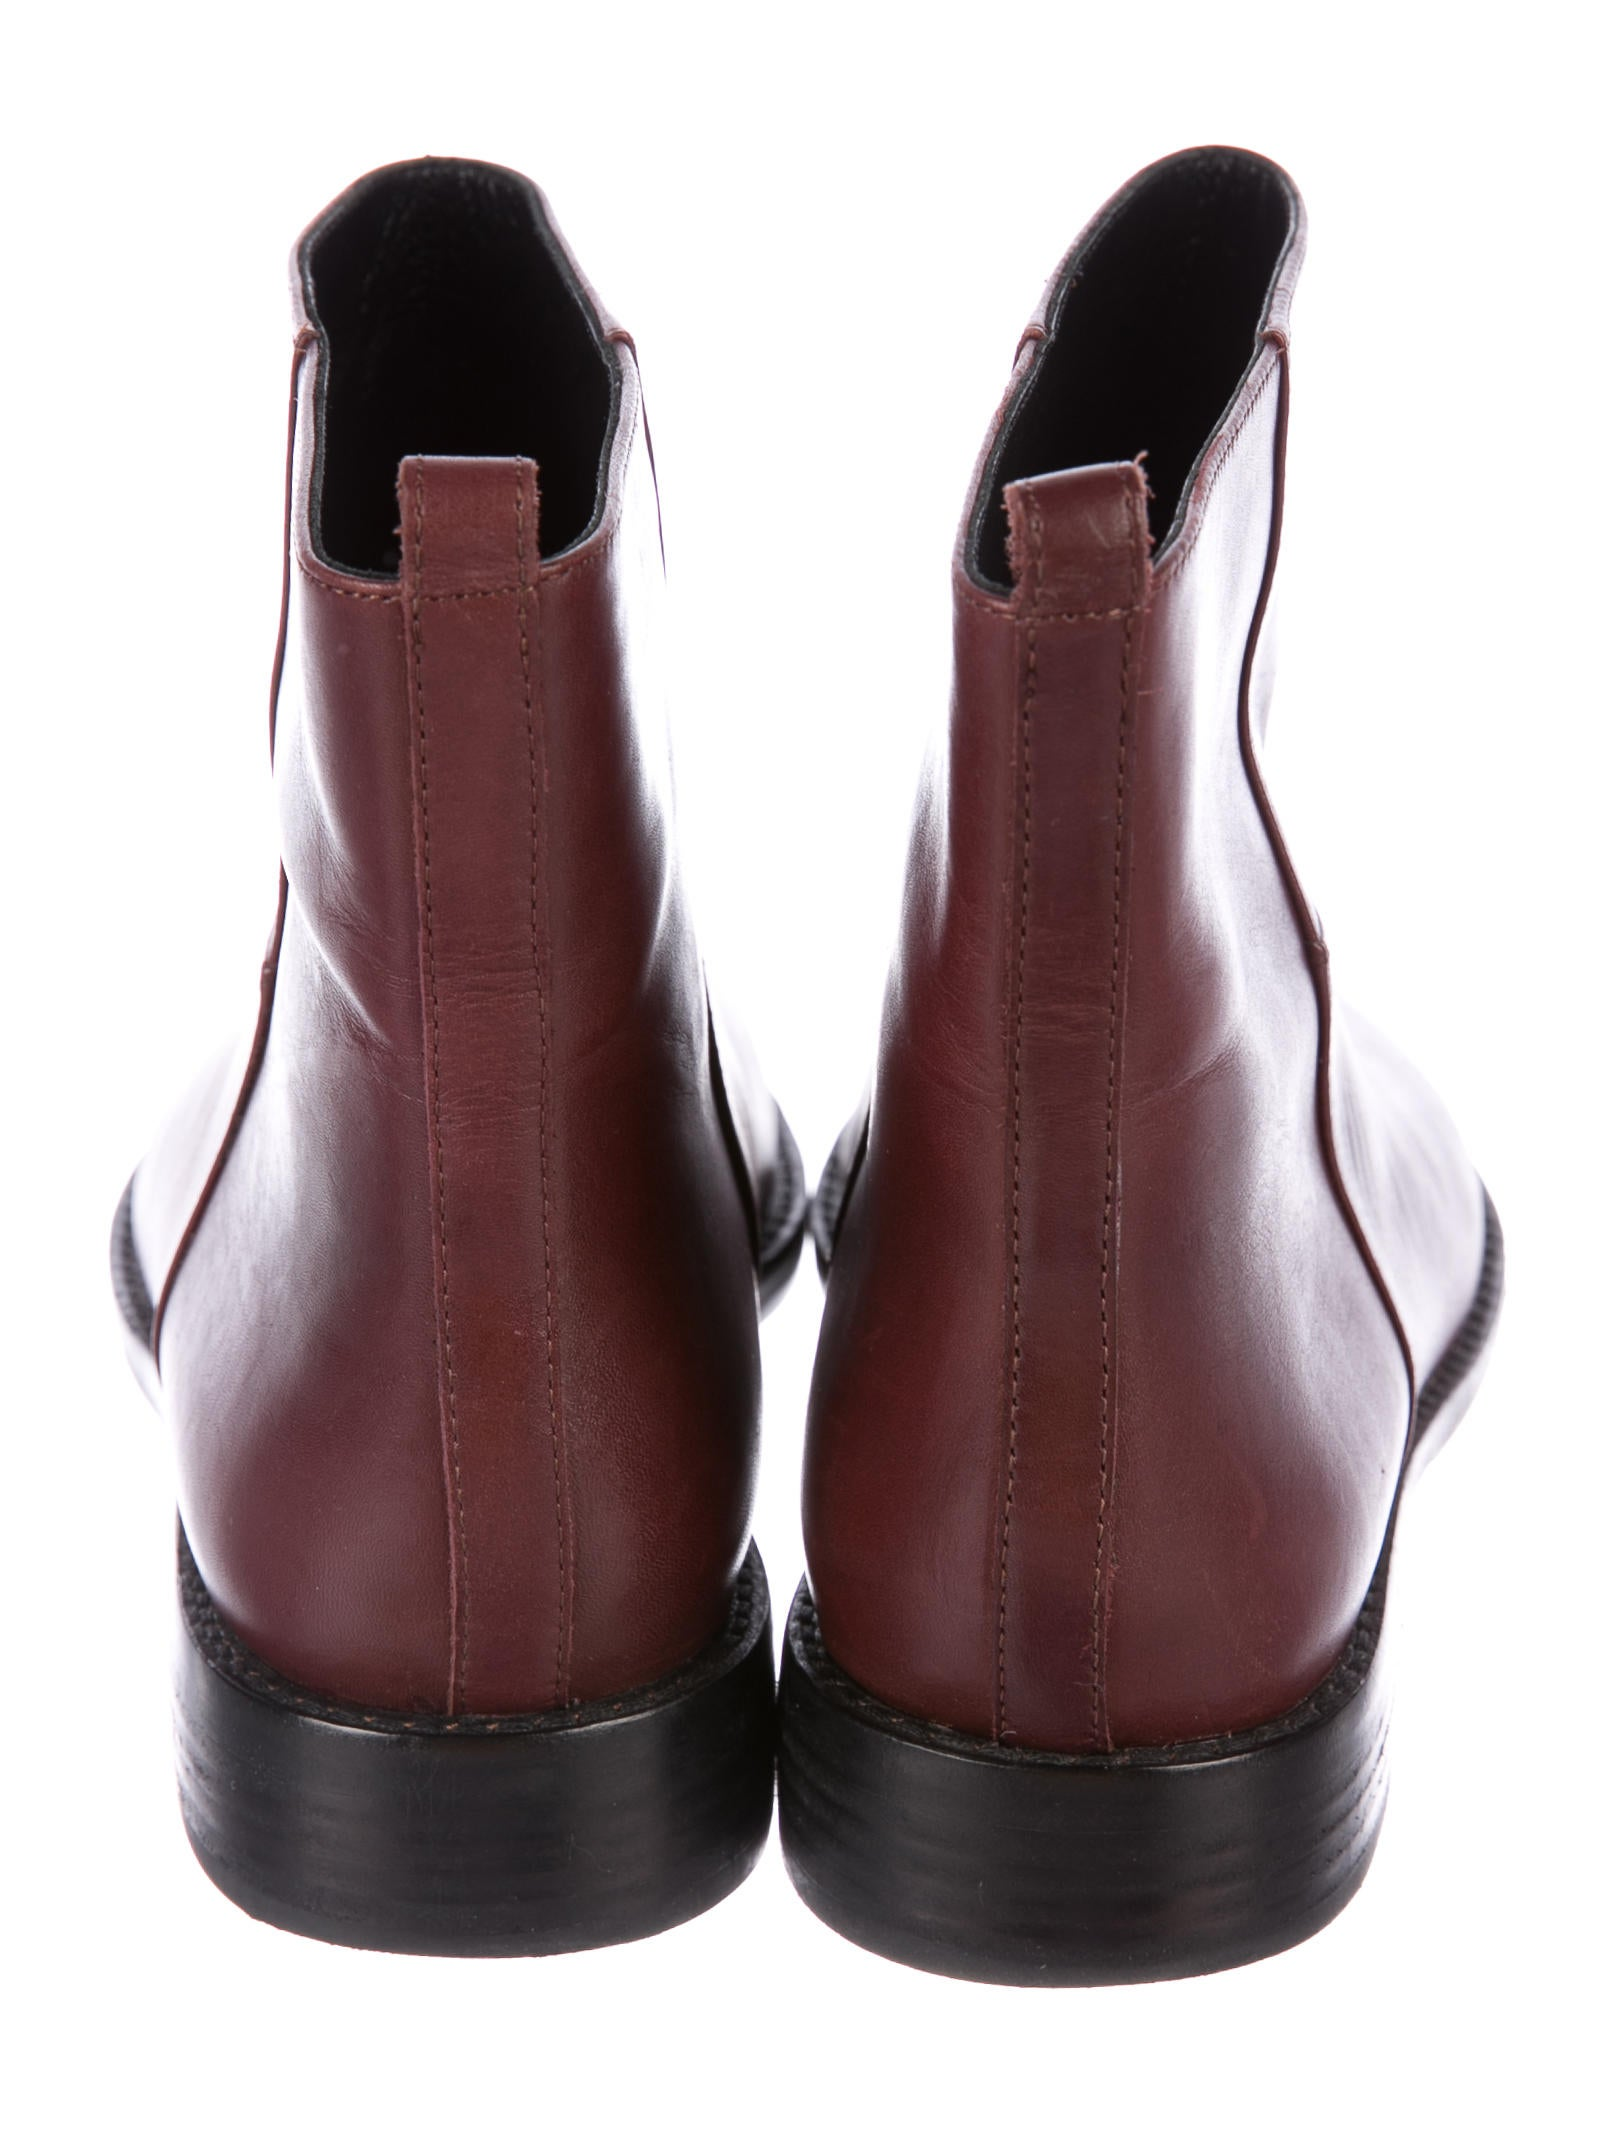 genuine cheap price outlet official site Theyskens' Theory Leather Semi Pointed-Toe Ankle Boots high quality online uaRkYy